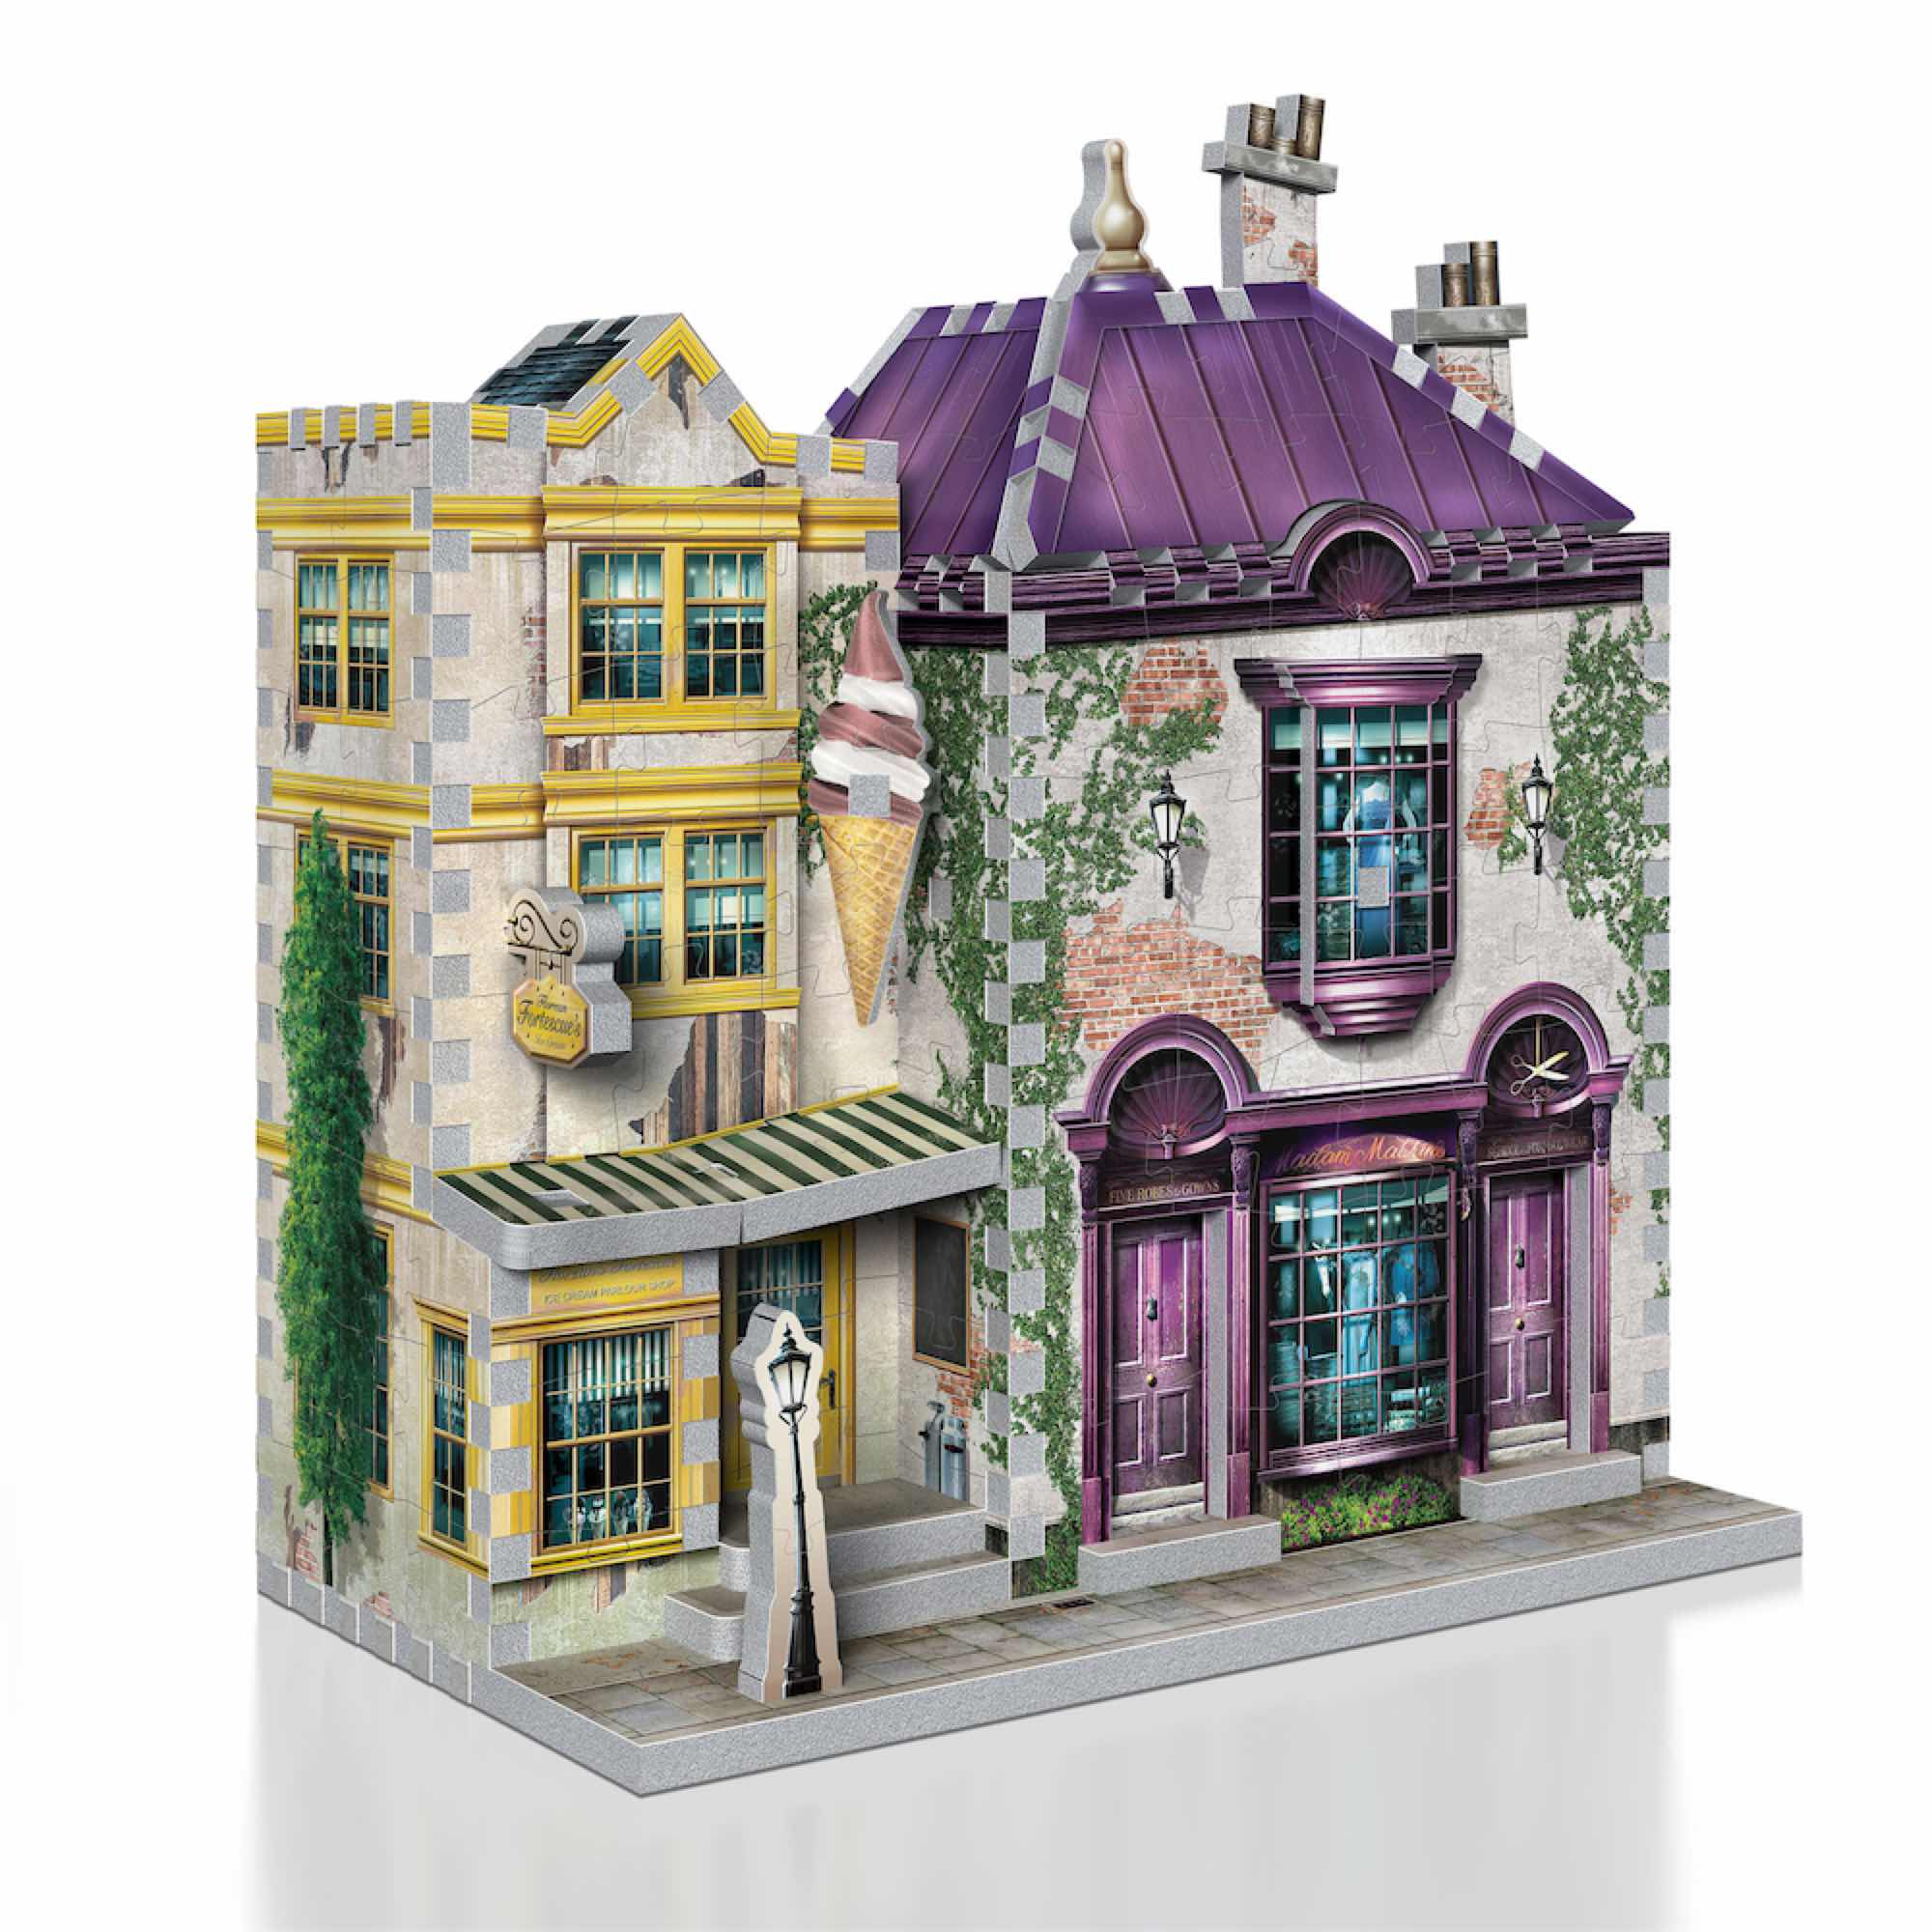 TIENDA MADAM MALKINS & HELADERIA FLOREAN FORTESCUE PUZLE 3D HARRY POTTER